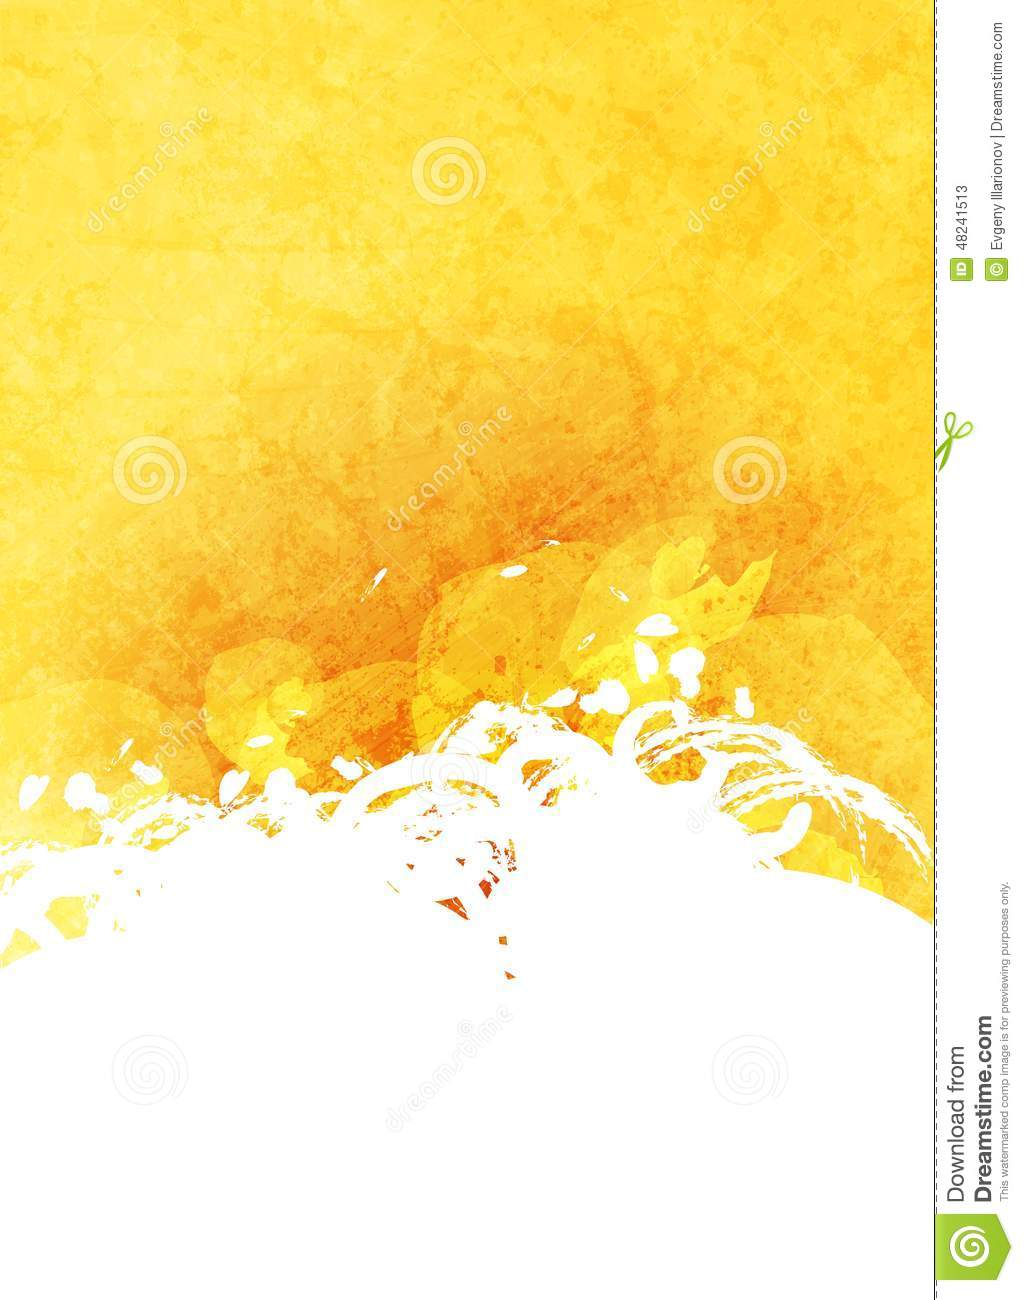 abstract grunge yellow and white background stock vector